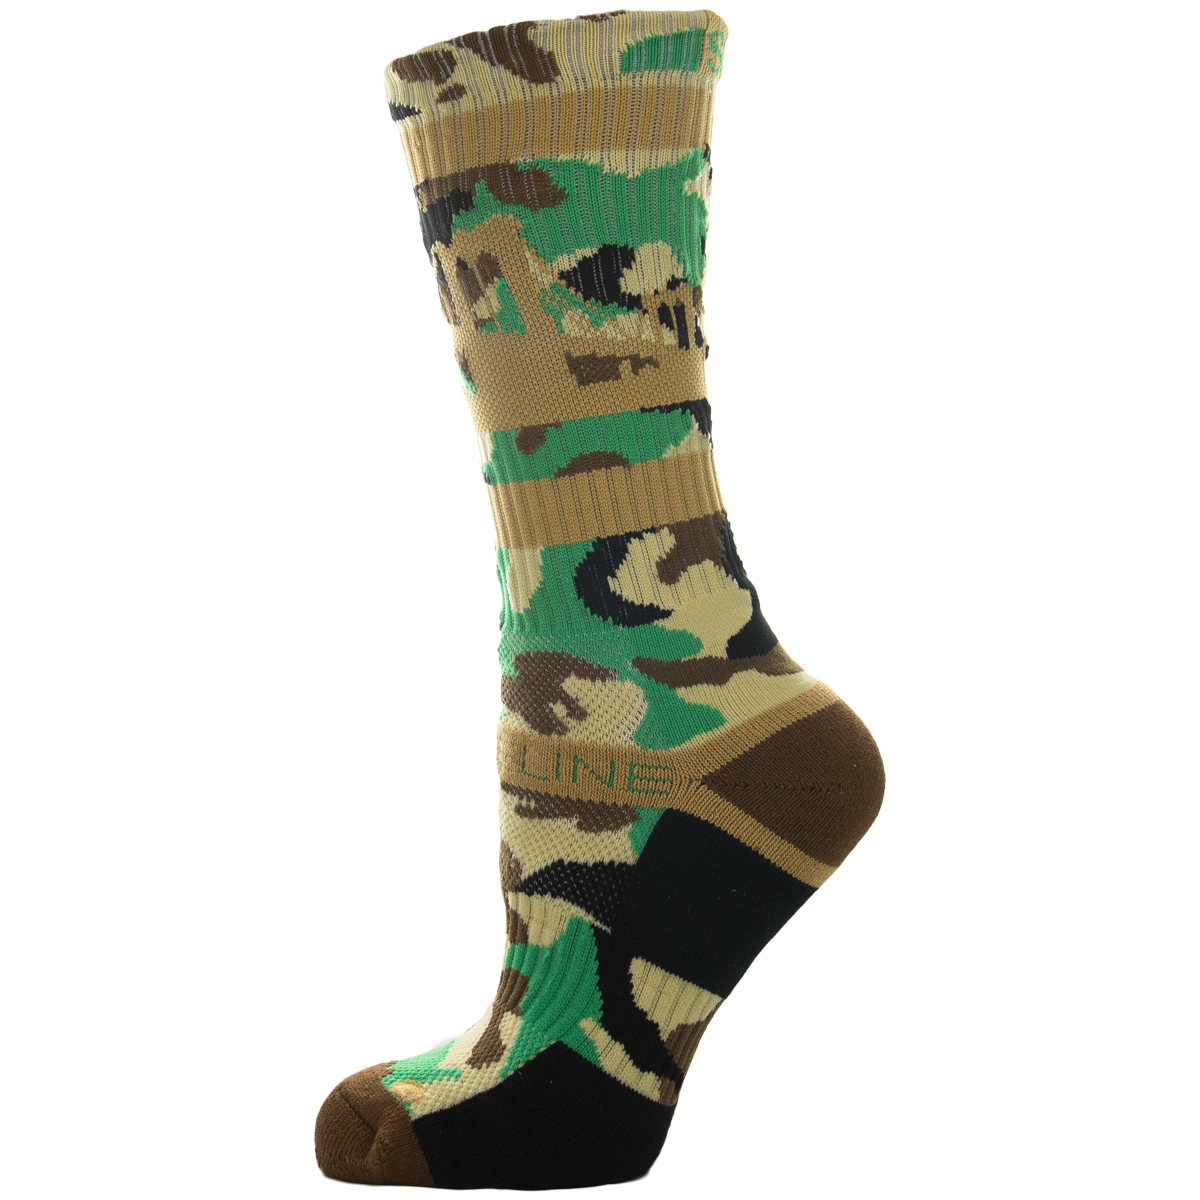 Strideline Athletic Crew Socks Brooklyn Camouflage 1300511 Strapped Fit Mens NYC